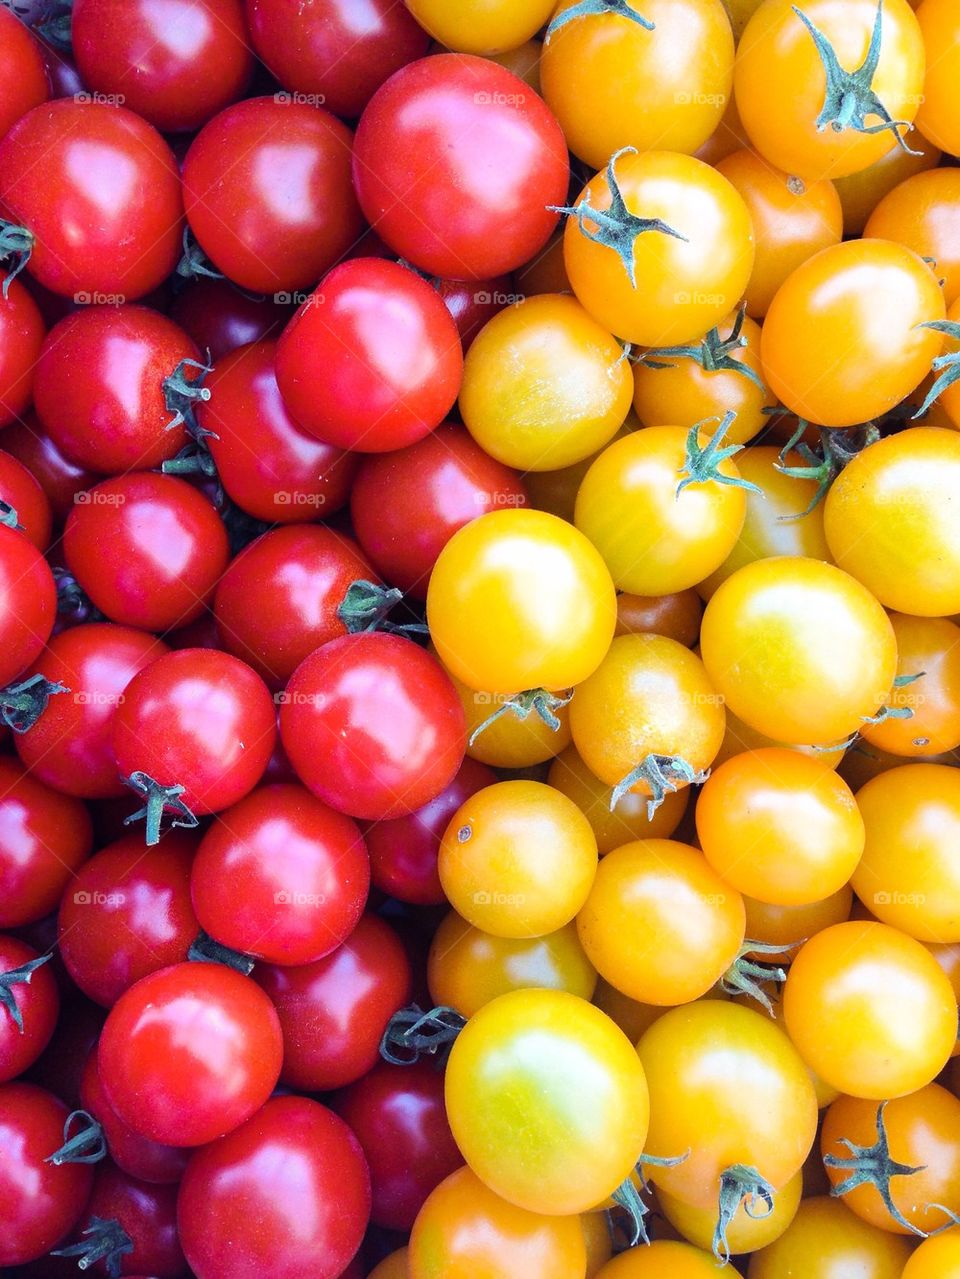 Variations of tomatoes